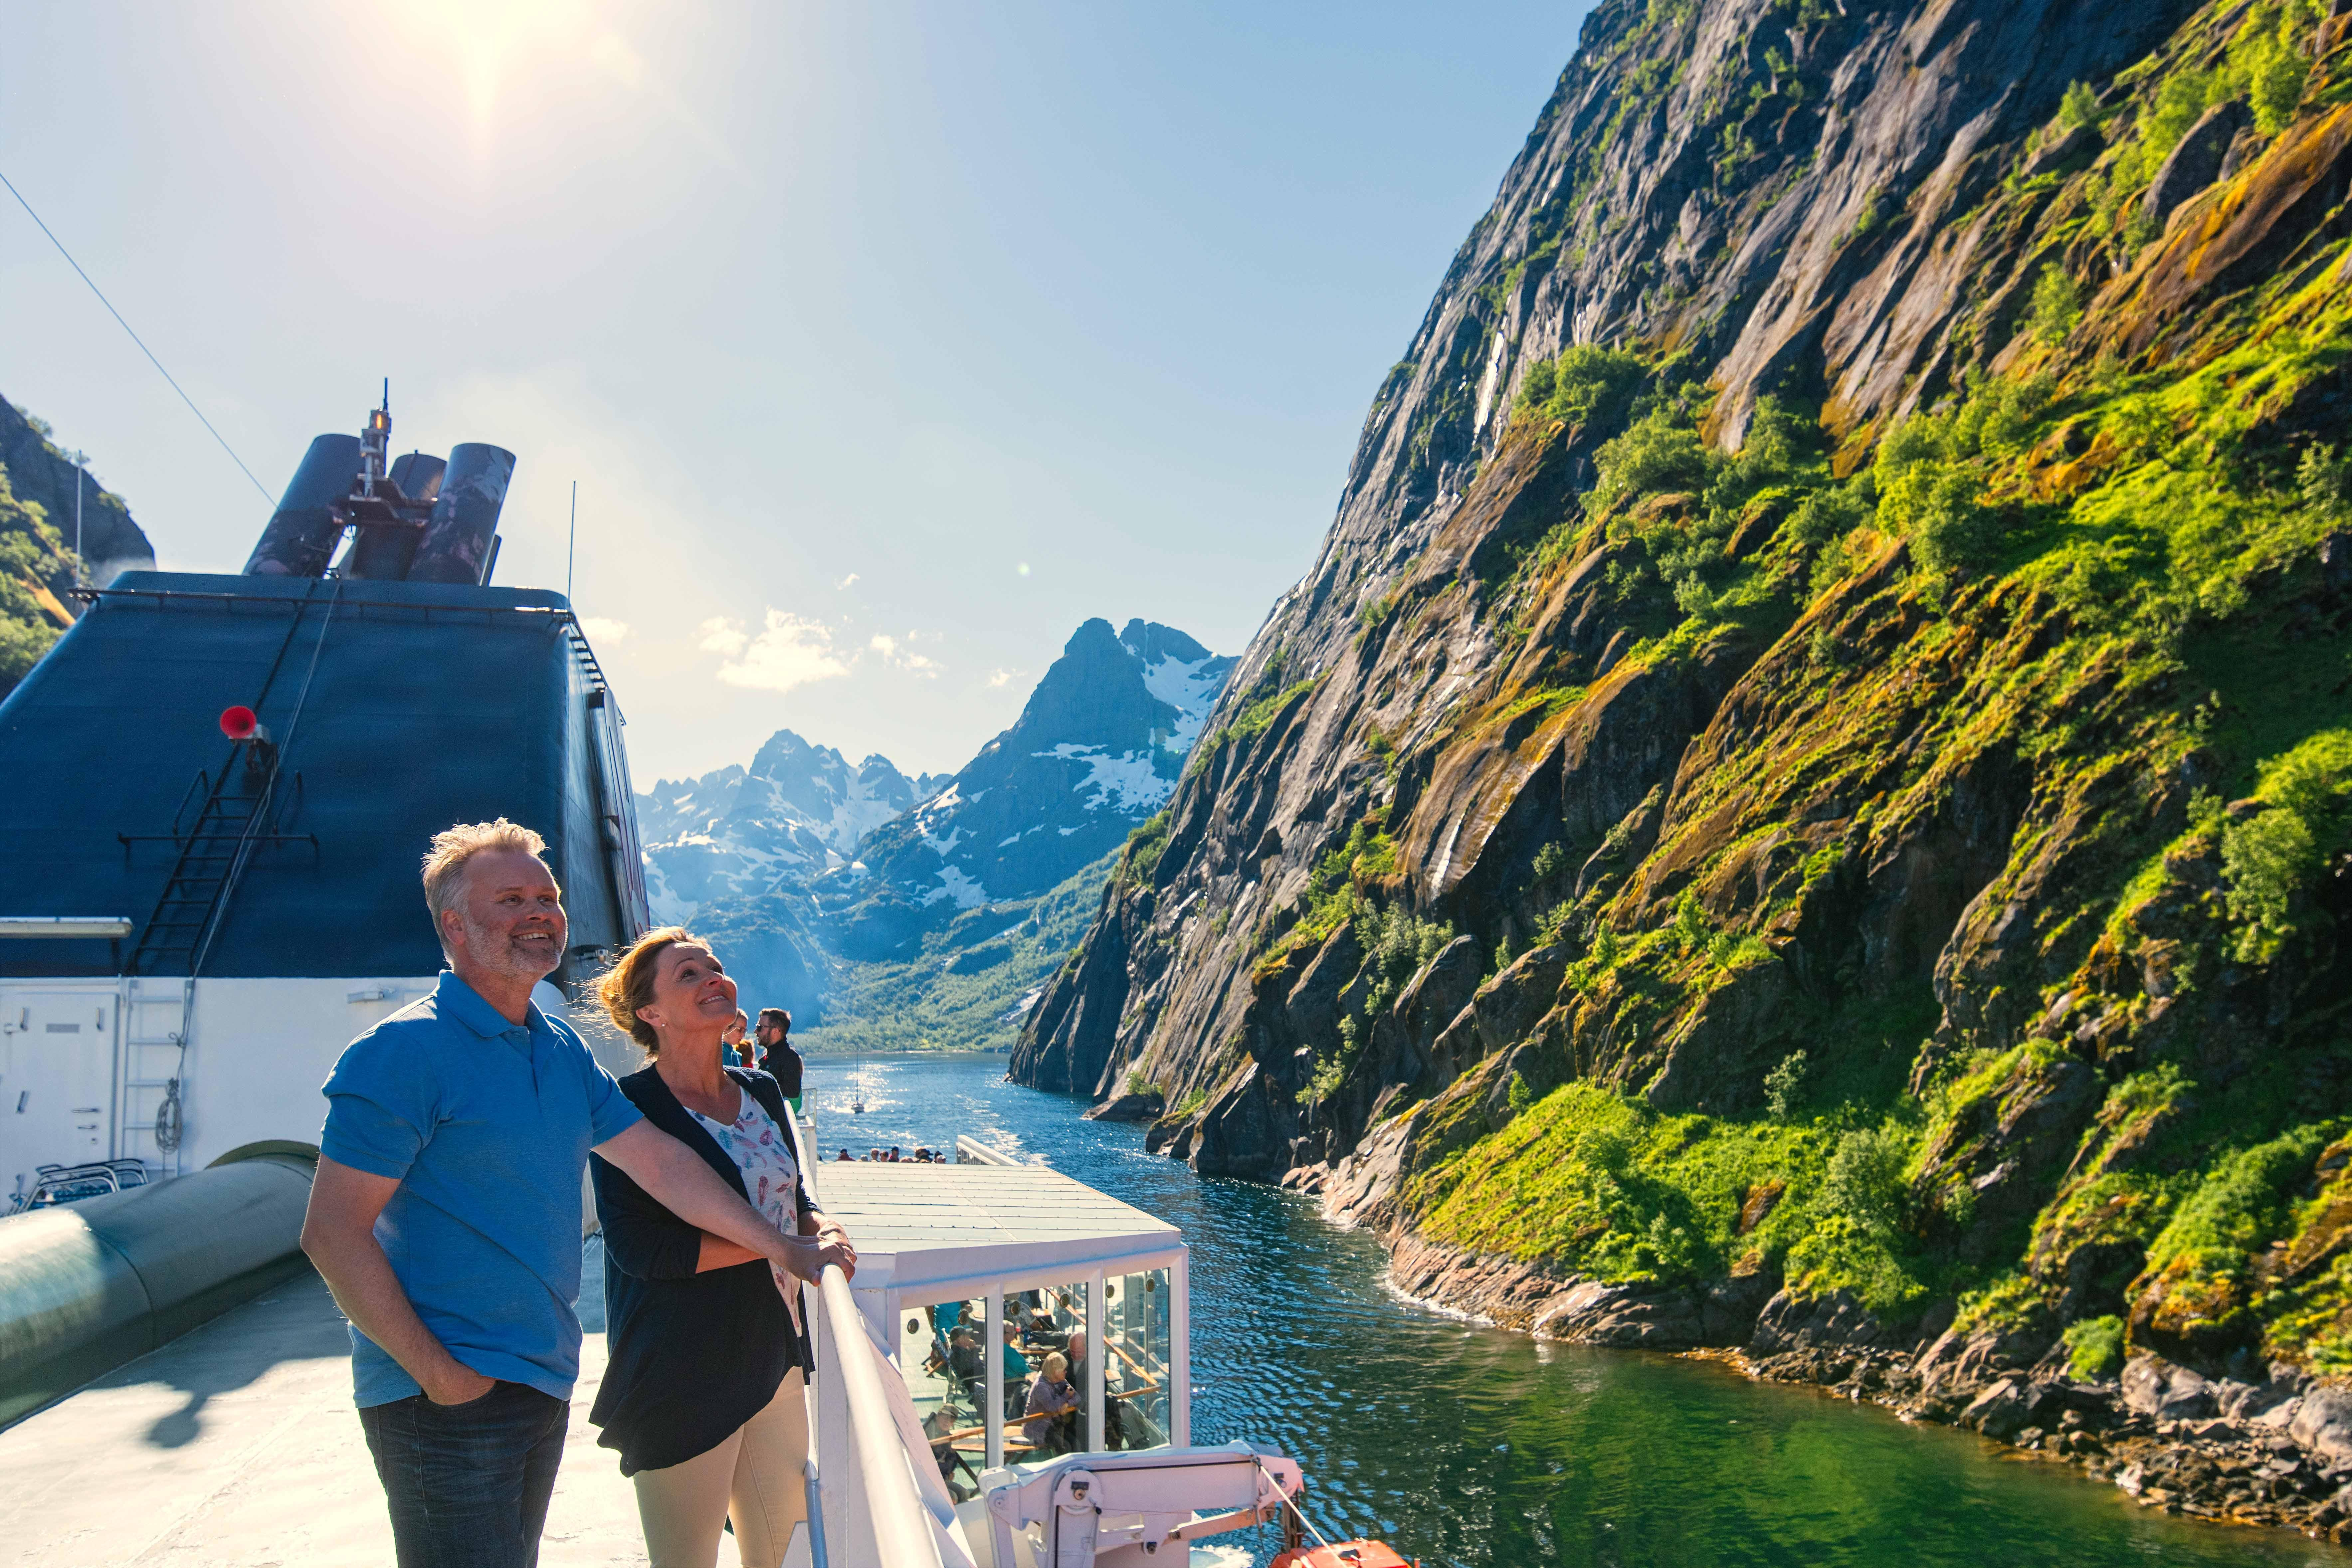 Experience breathtaking views of fjords with Norway cruises